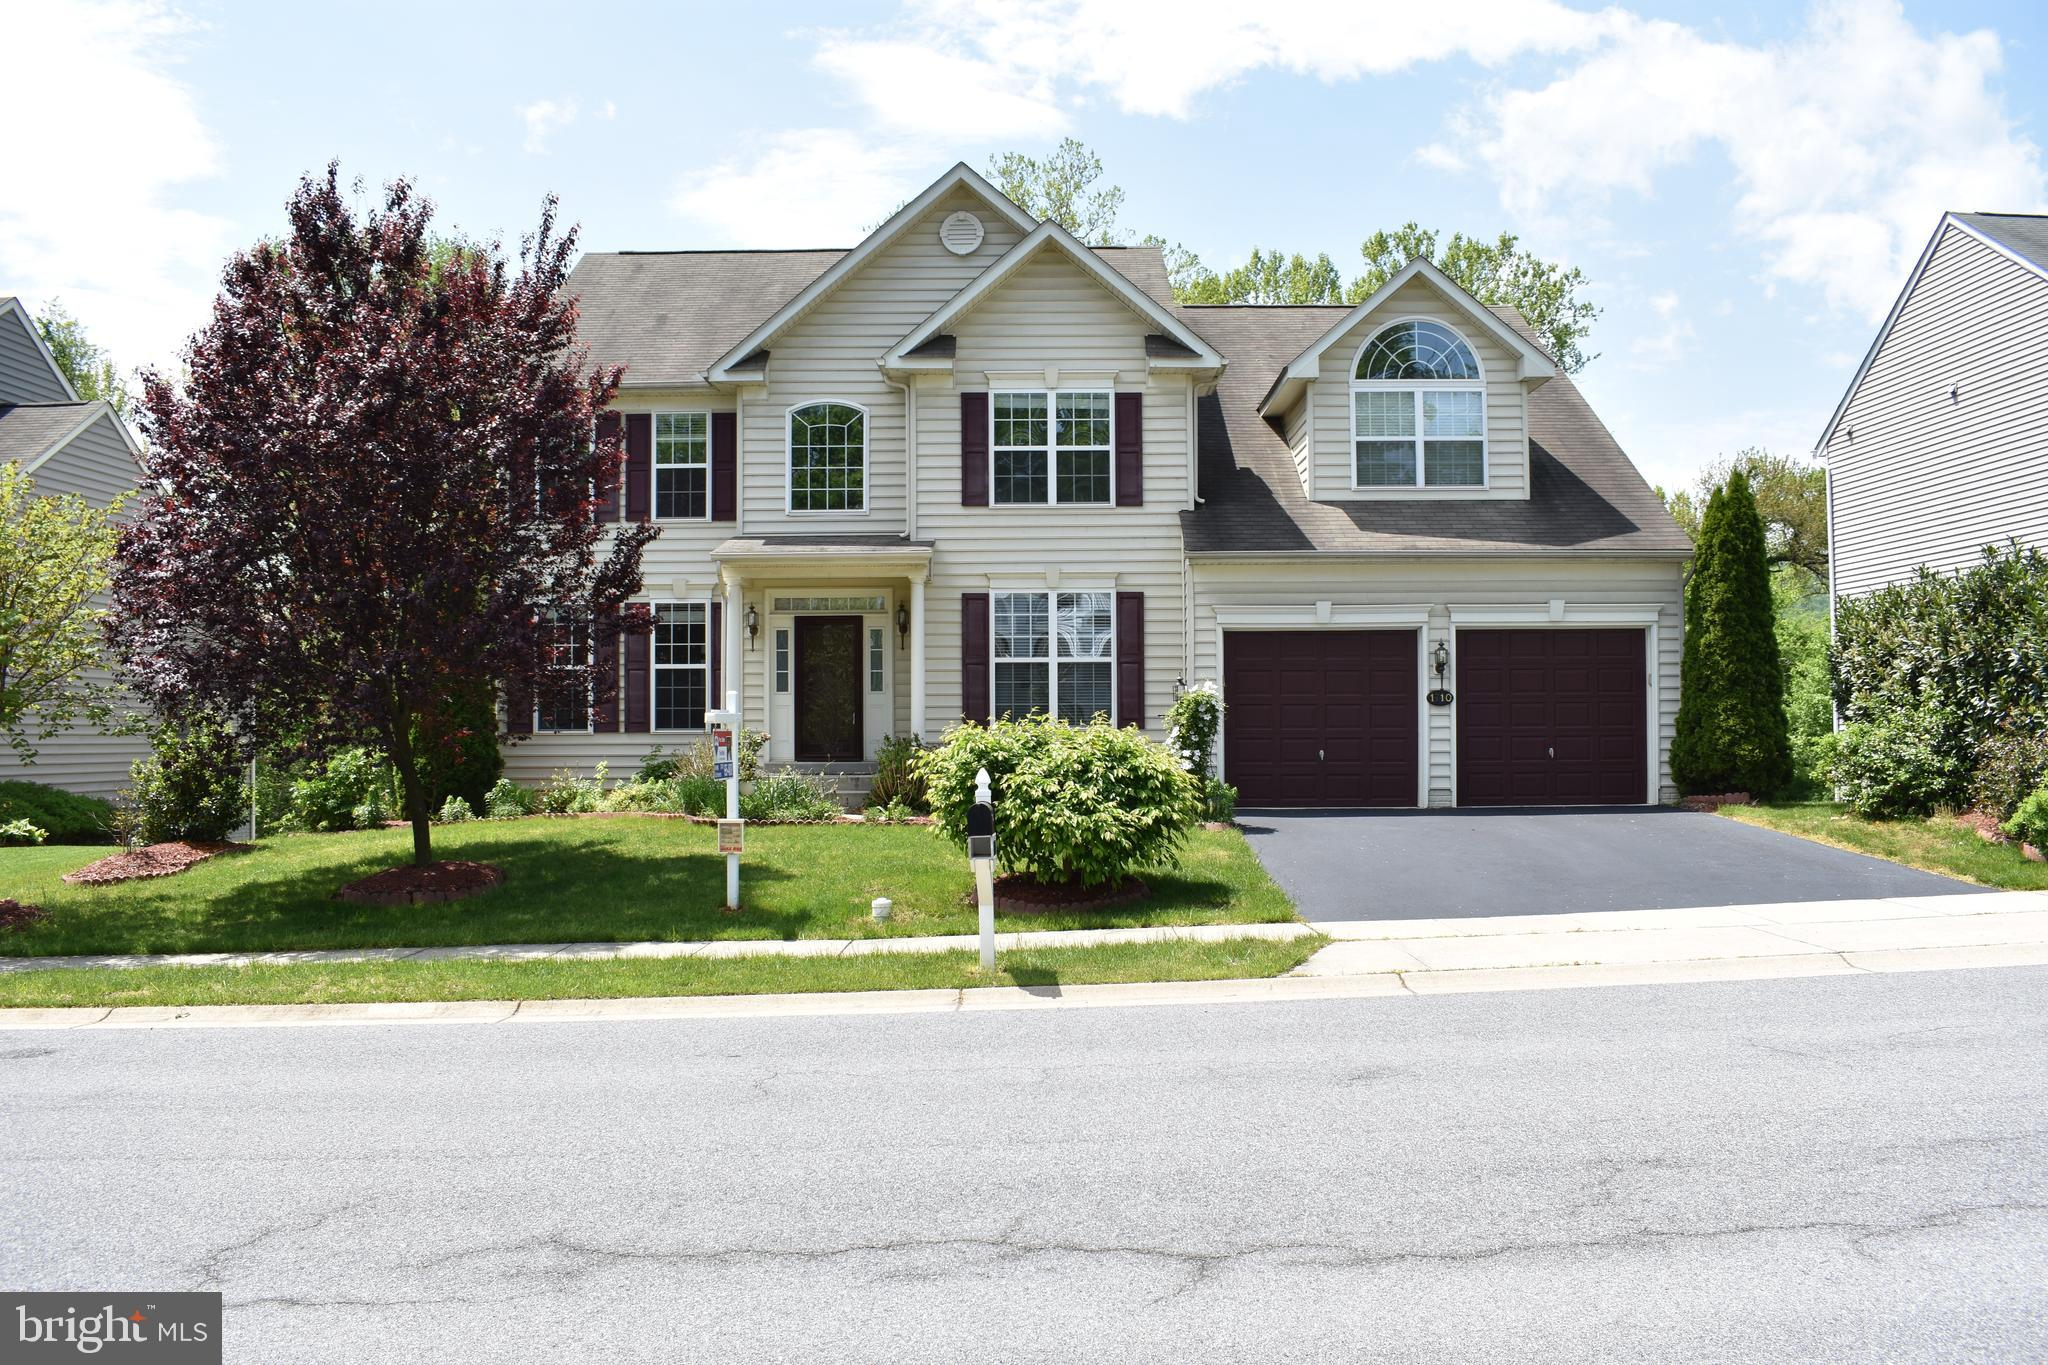 1710 CANAL CLIPPER COURT, POINT OF ROCKS, MD 21777